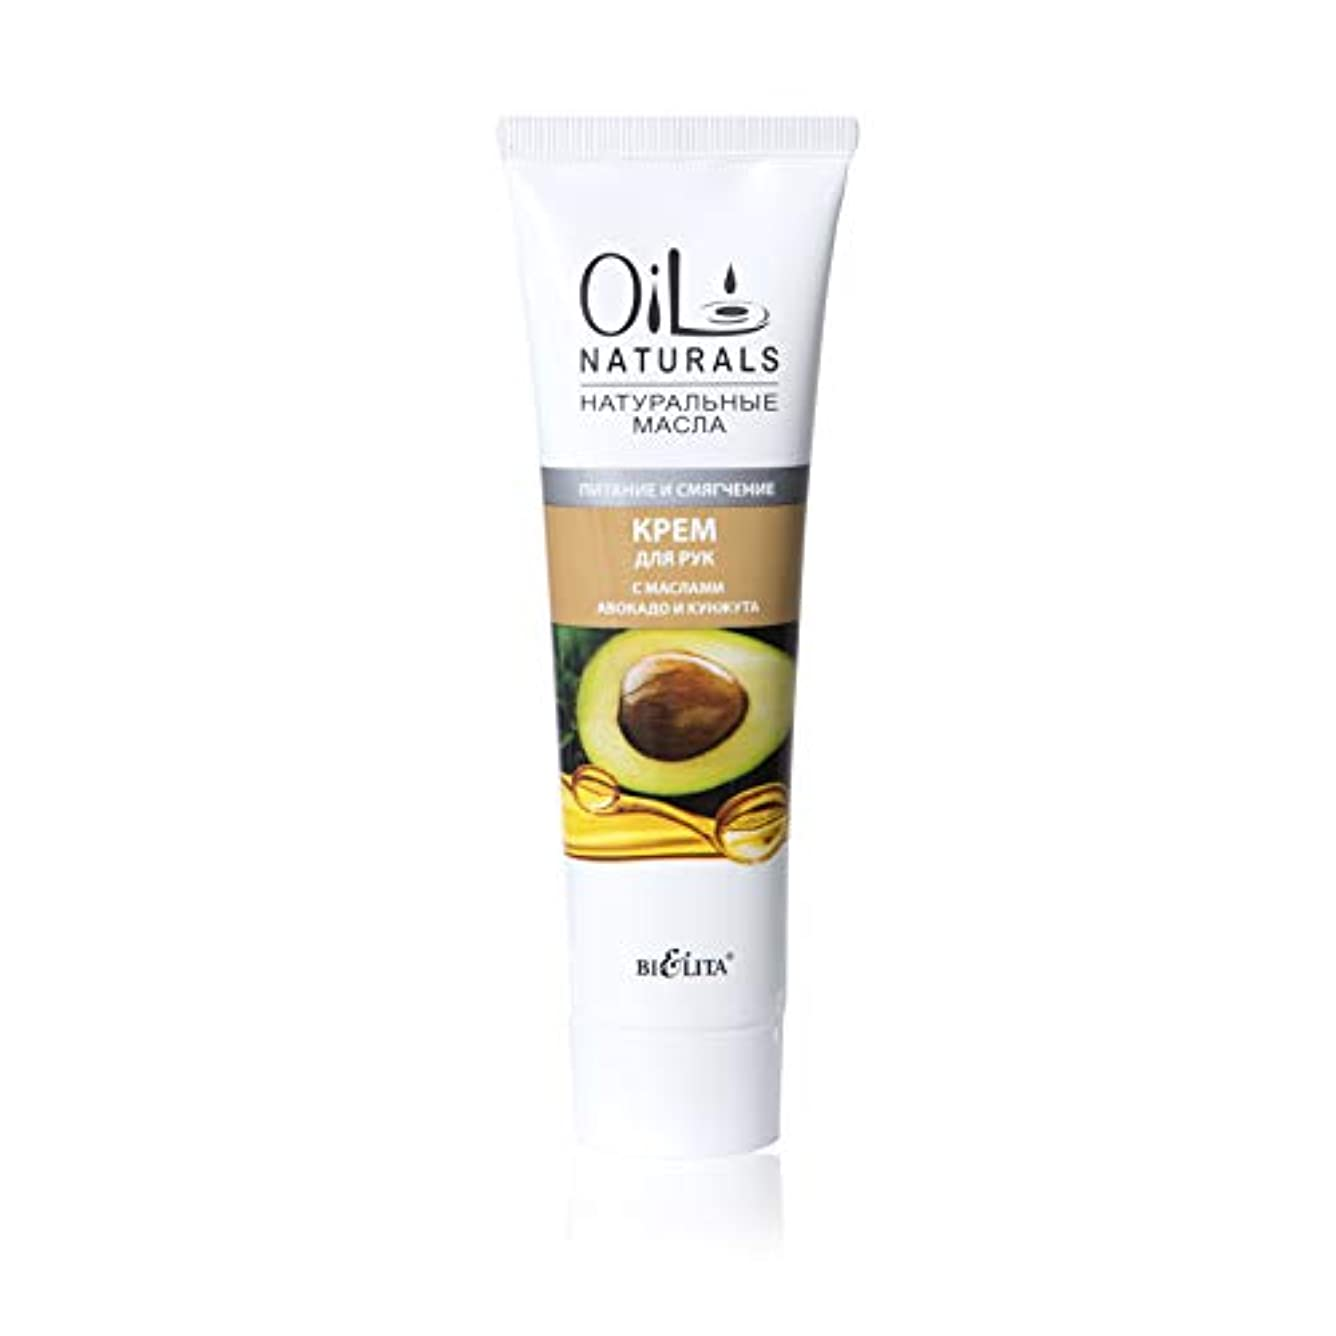 氏遺体安置所面倒Bielita & Vitex Oil Naturals Line | Nutrition & Softening Hand Cream, 100 ml | Avocado Oil, Silk Proteins, Sesame...